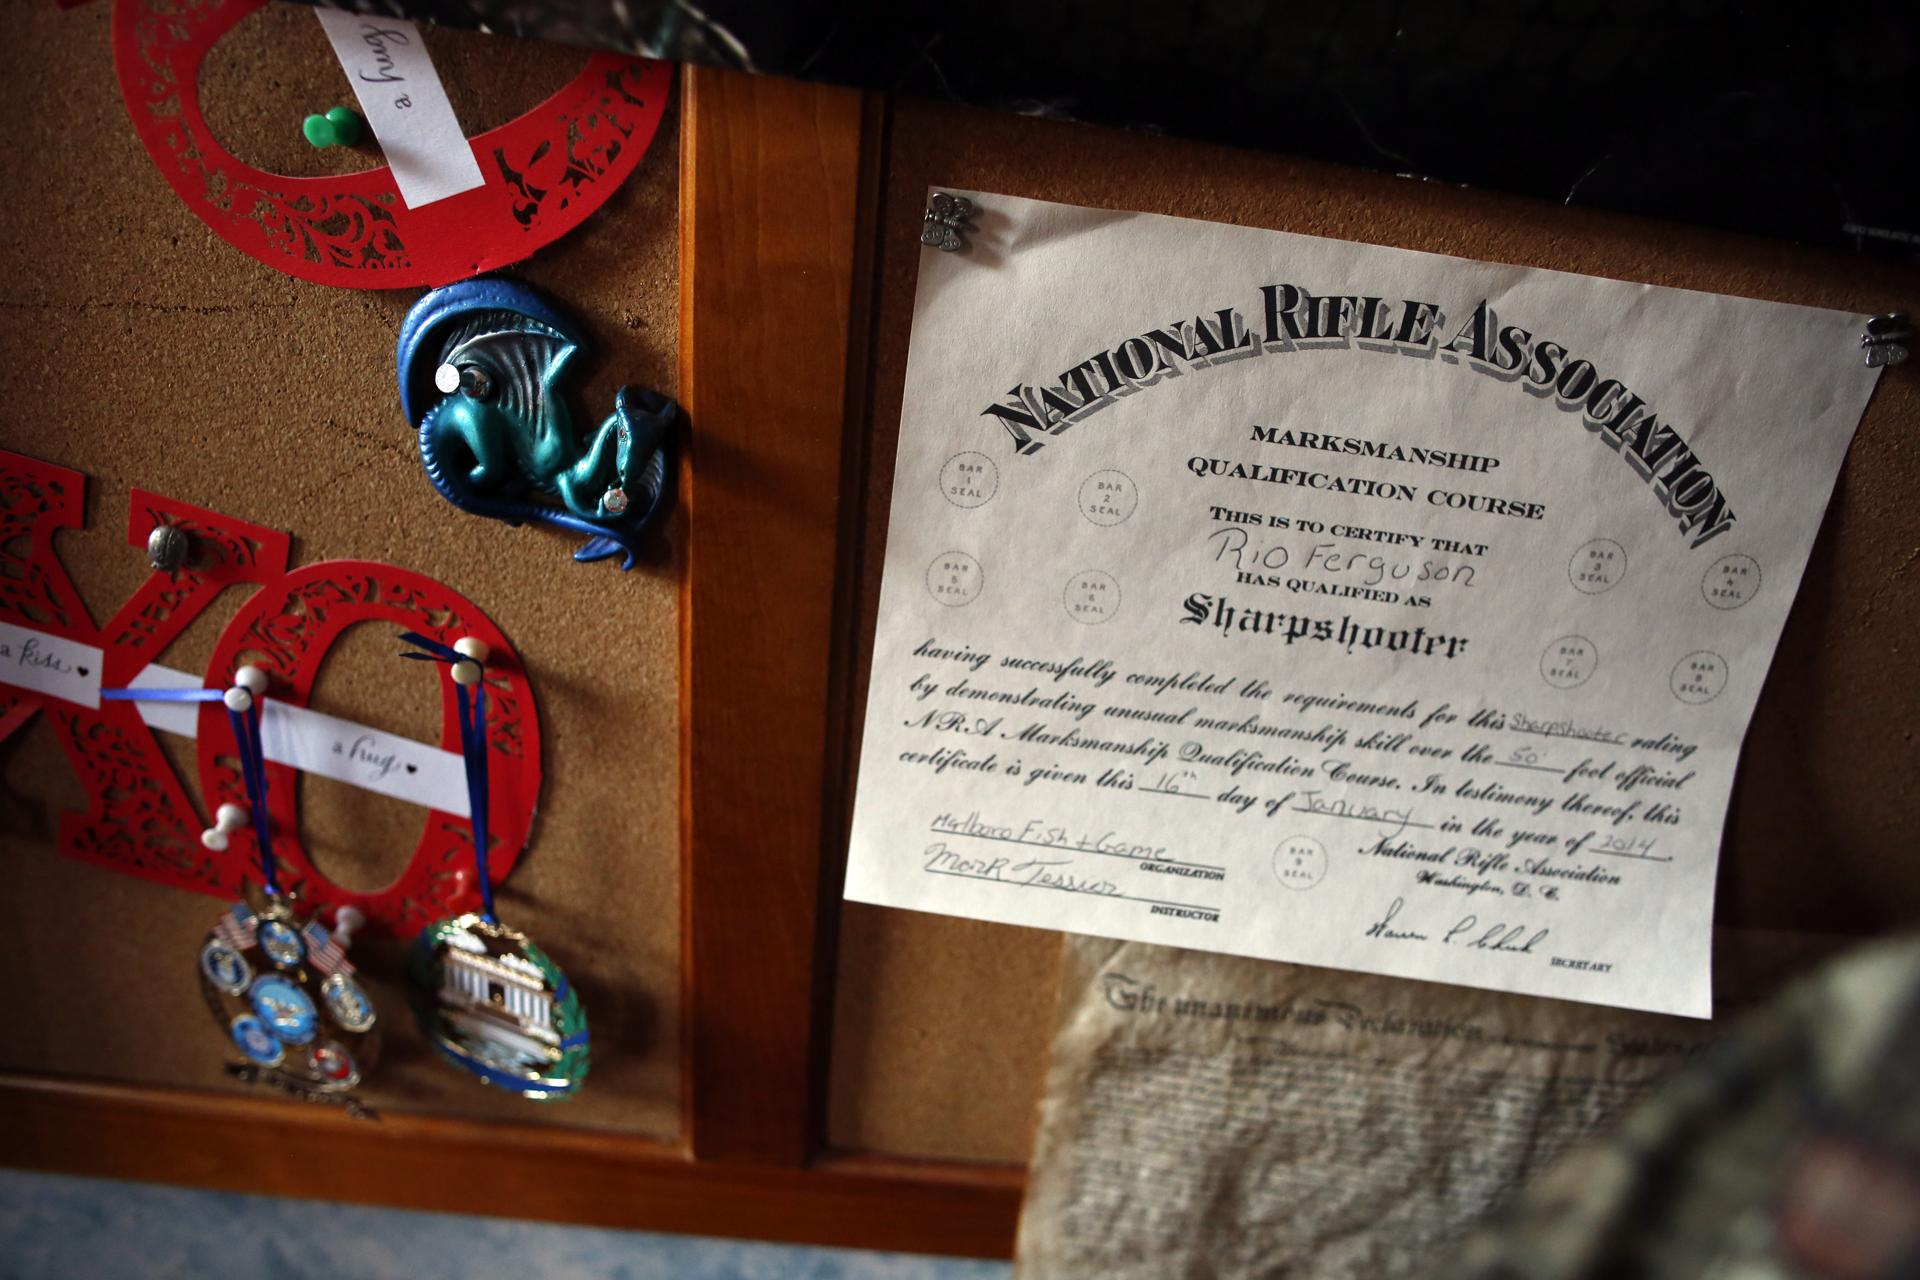 An NRA Marksman Qualification Course certificate hangs on the bulletin board in Rio Ferguson's bedroom.